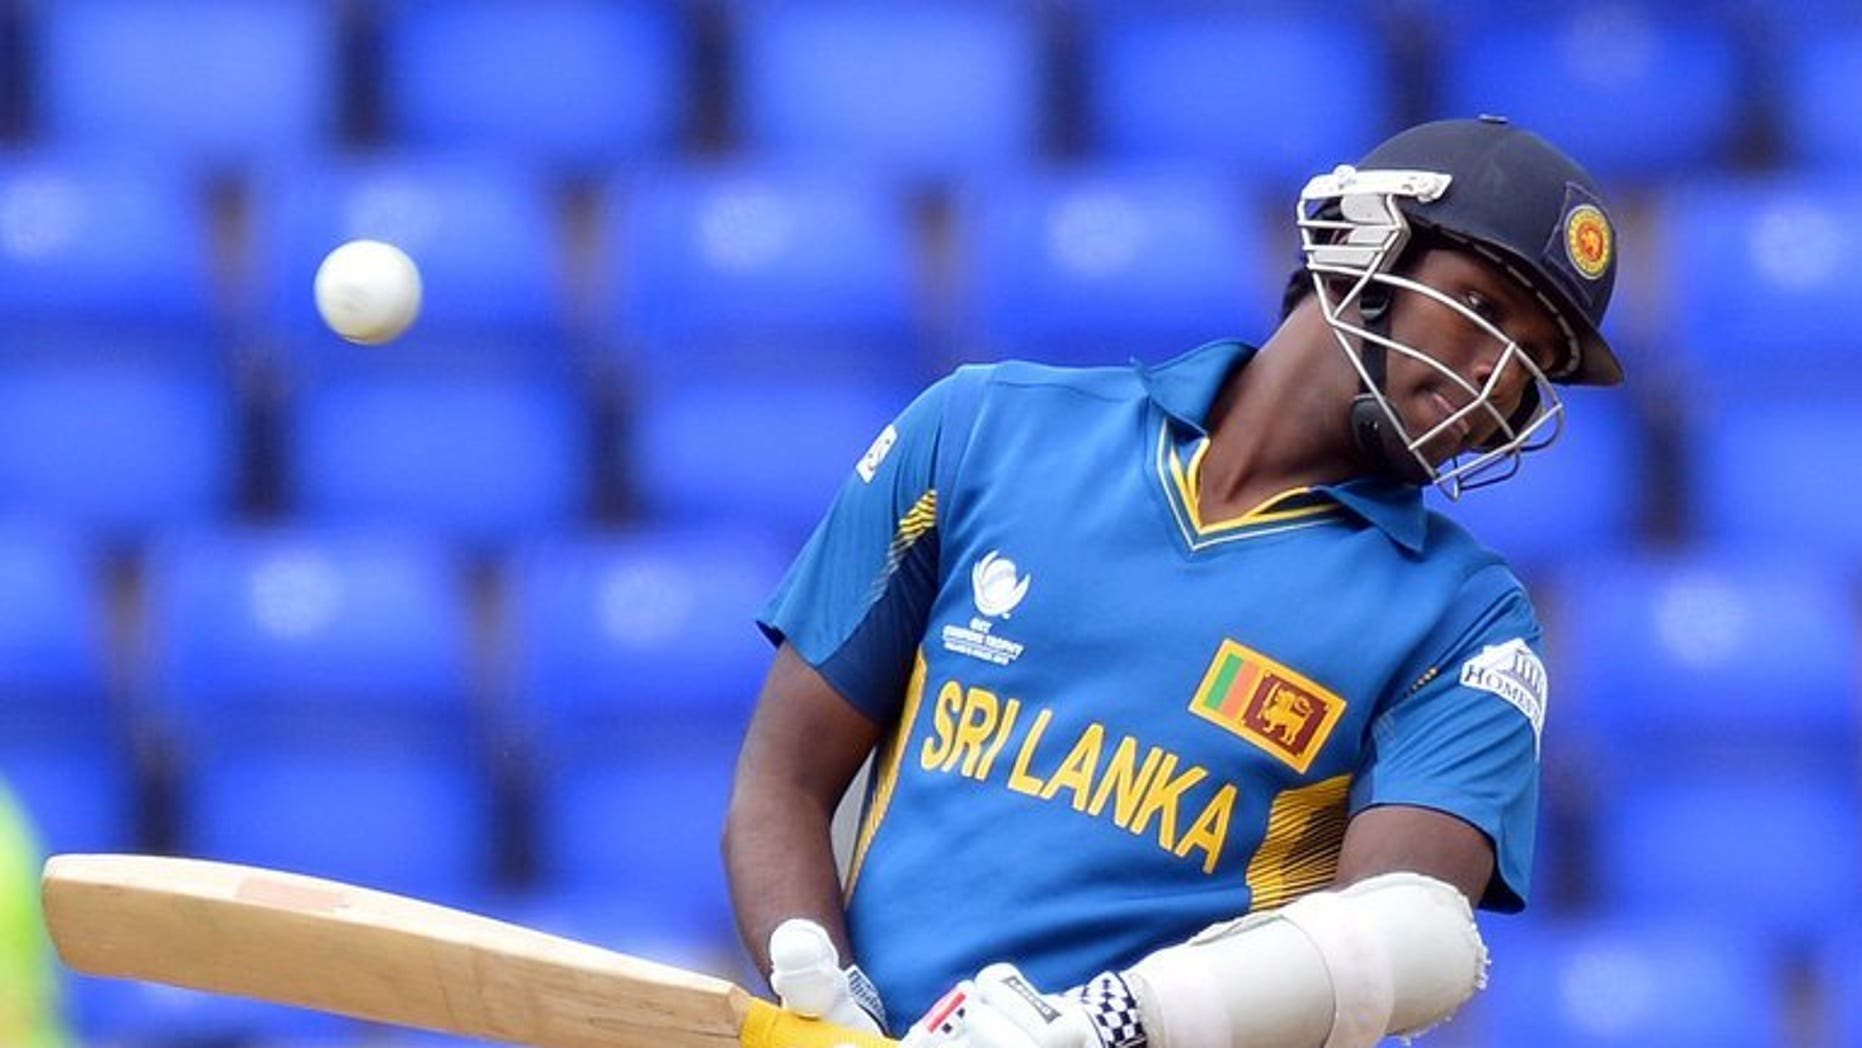 """Sri Lanka's Angelo Mathews avoids a ball during the 2013 ICC Champions Trophy cricket match between Sri Lanka and New Zealand at The Cardiff Wales Stadium in Cardiff, Wales, on June 9, 2013. Mathews on Wednesday vowed that his """"fighting team"""" were prepared to put recent history behind them when they face India in the semi-finals of the Champions Trophy."""